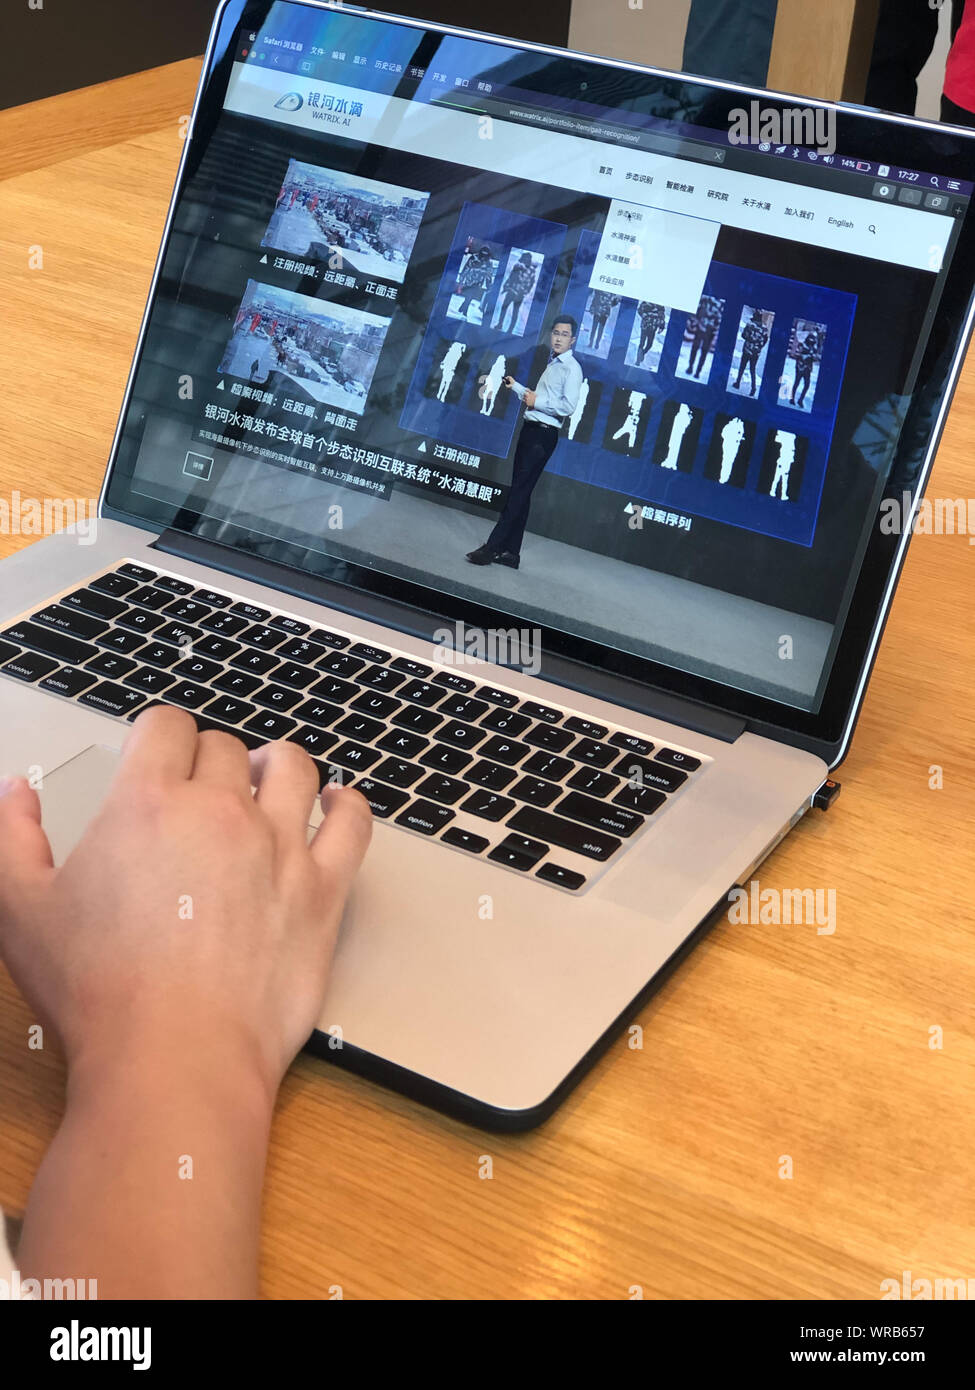 A Chinese netizen browses the website of AI technology company Watrix on his Apple laptop computer in Beijing, China, July 23rd, 2019. Stock Photo